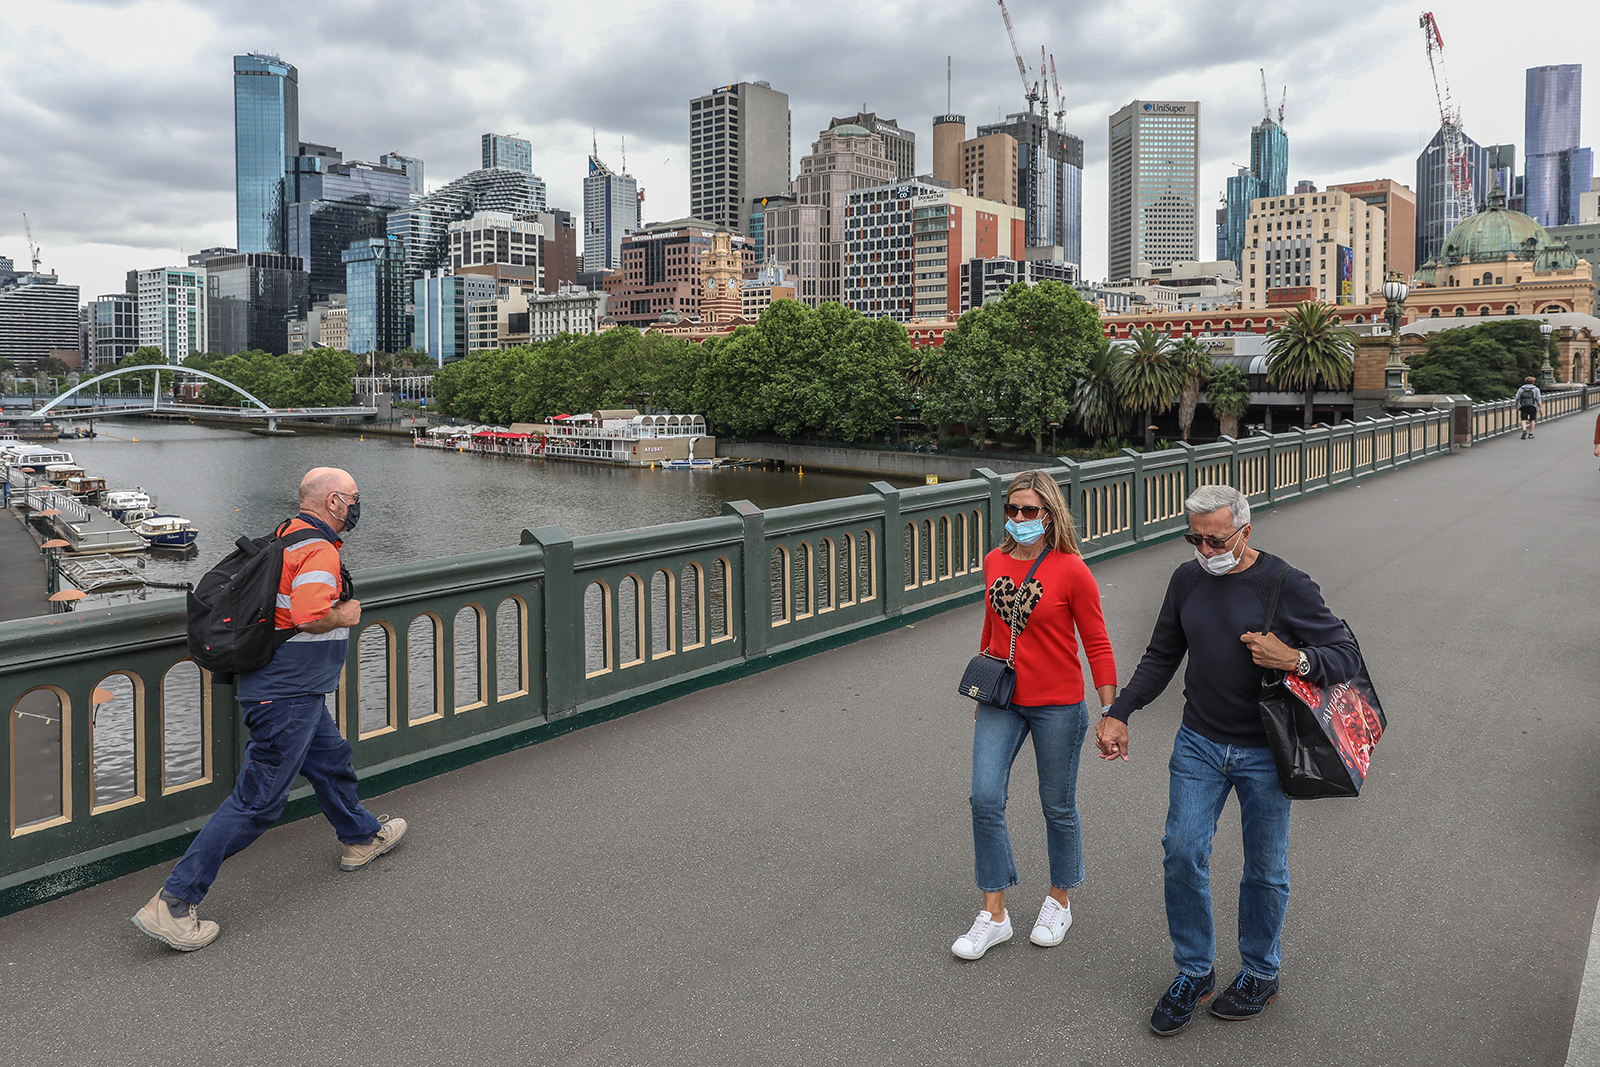 A general view of pedestrians crossing the bridge with the Yarra River and CBD in the background in Melbourne, Australia, on November 06.